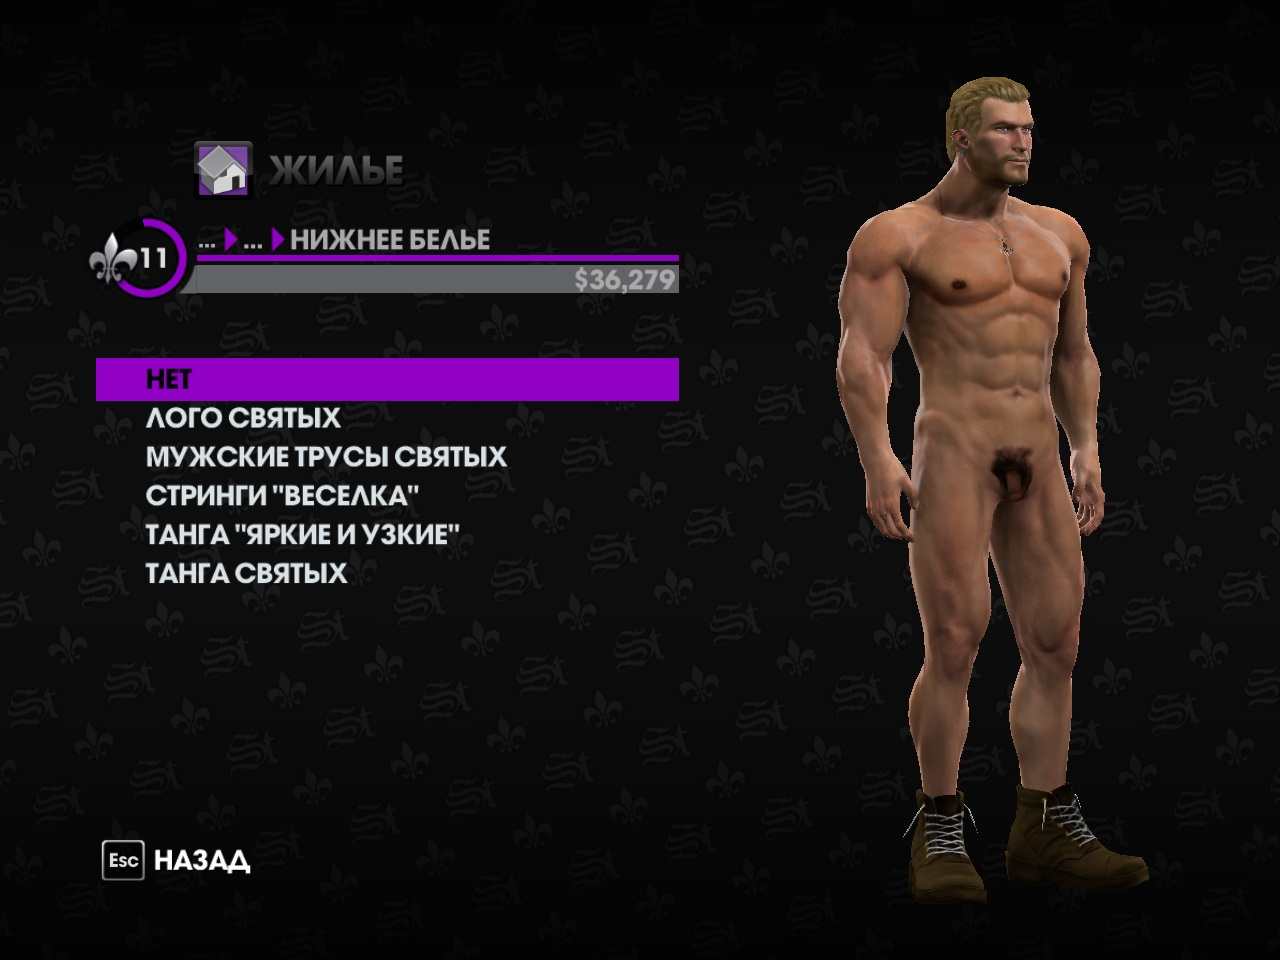 Saints row the third nude nude photos